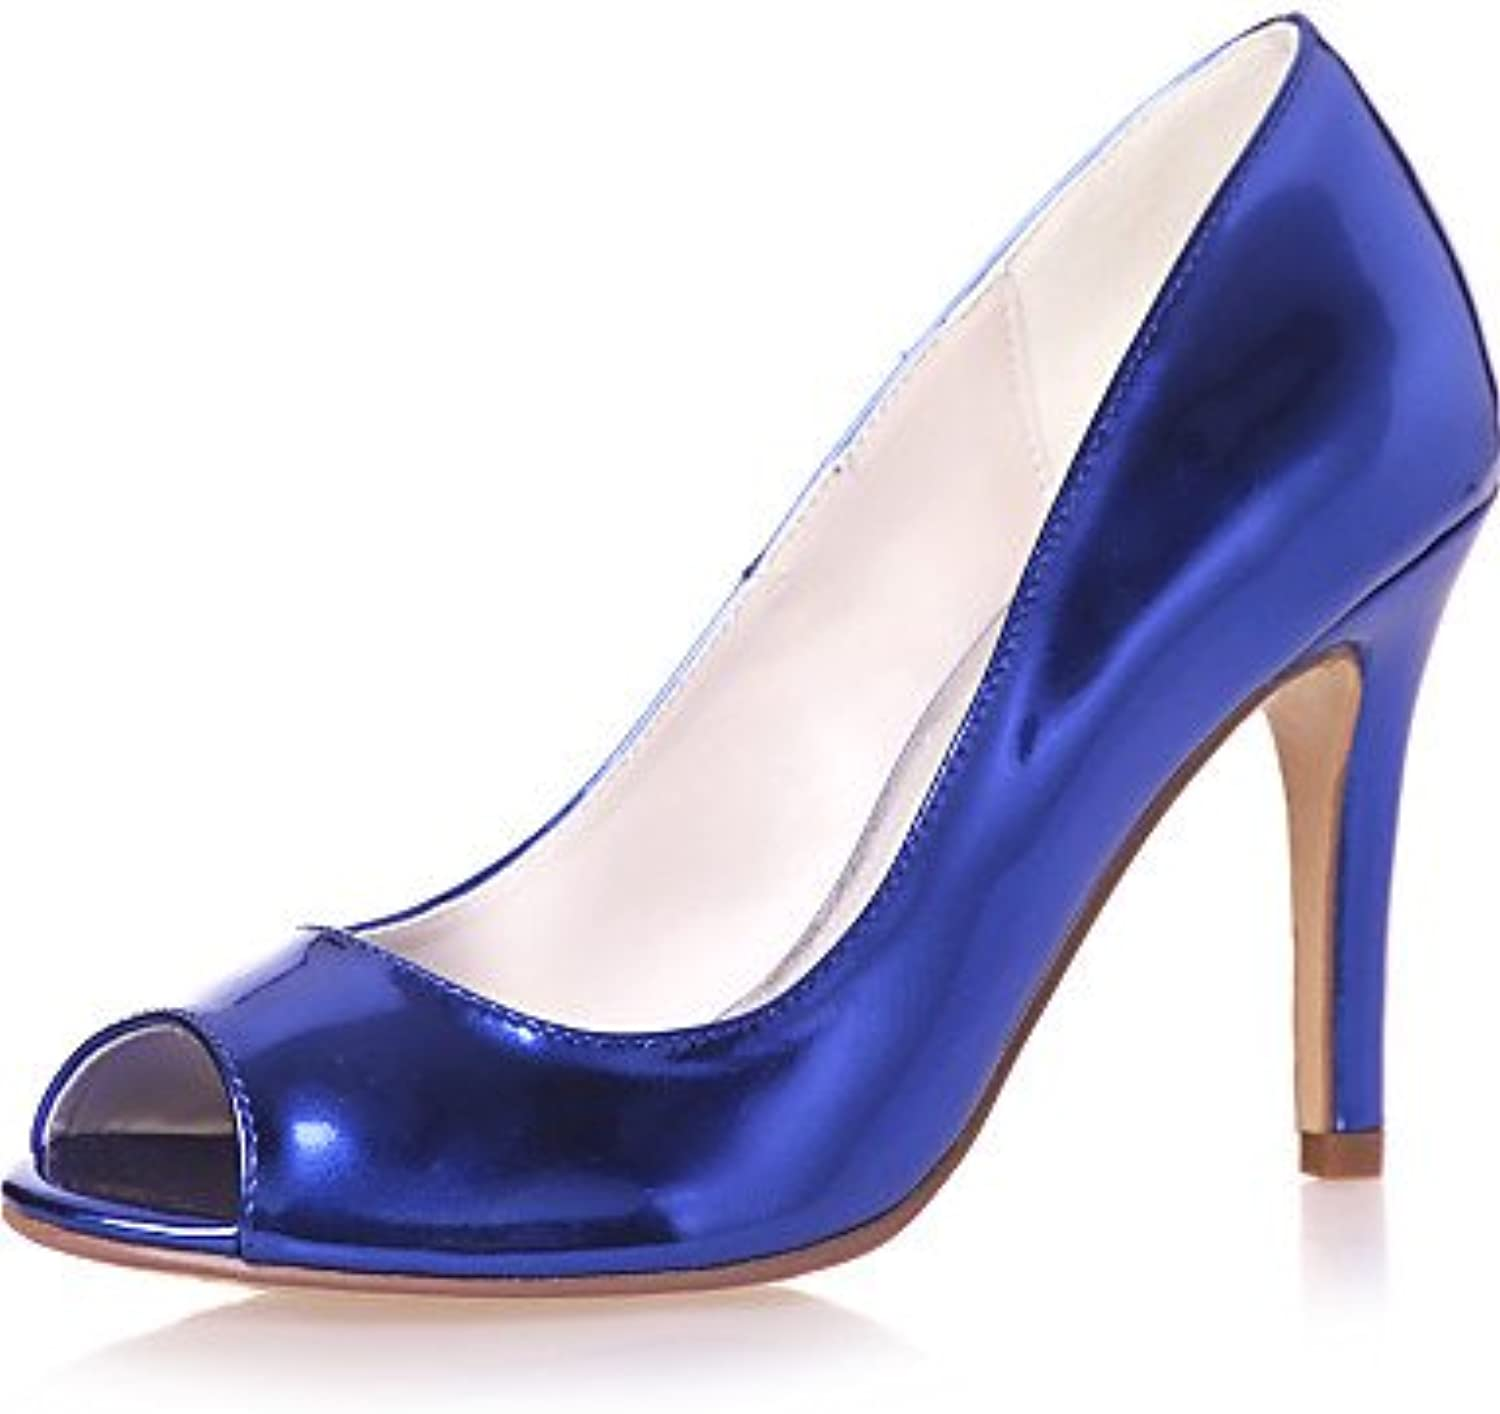 MEIREN Women's shoes Patent Leather Stiletto Heel Peep Toe Sandals Wedding Party & Evening Casual Black bluee Silver gold